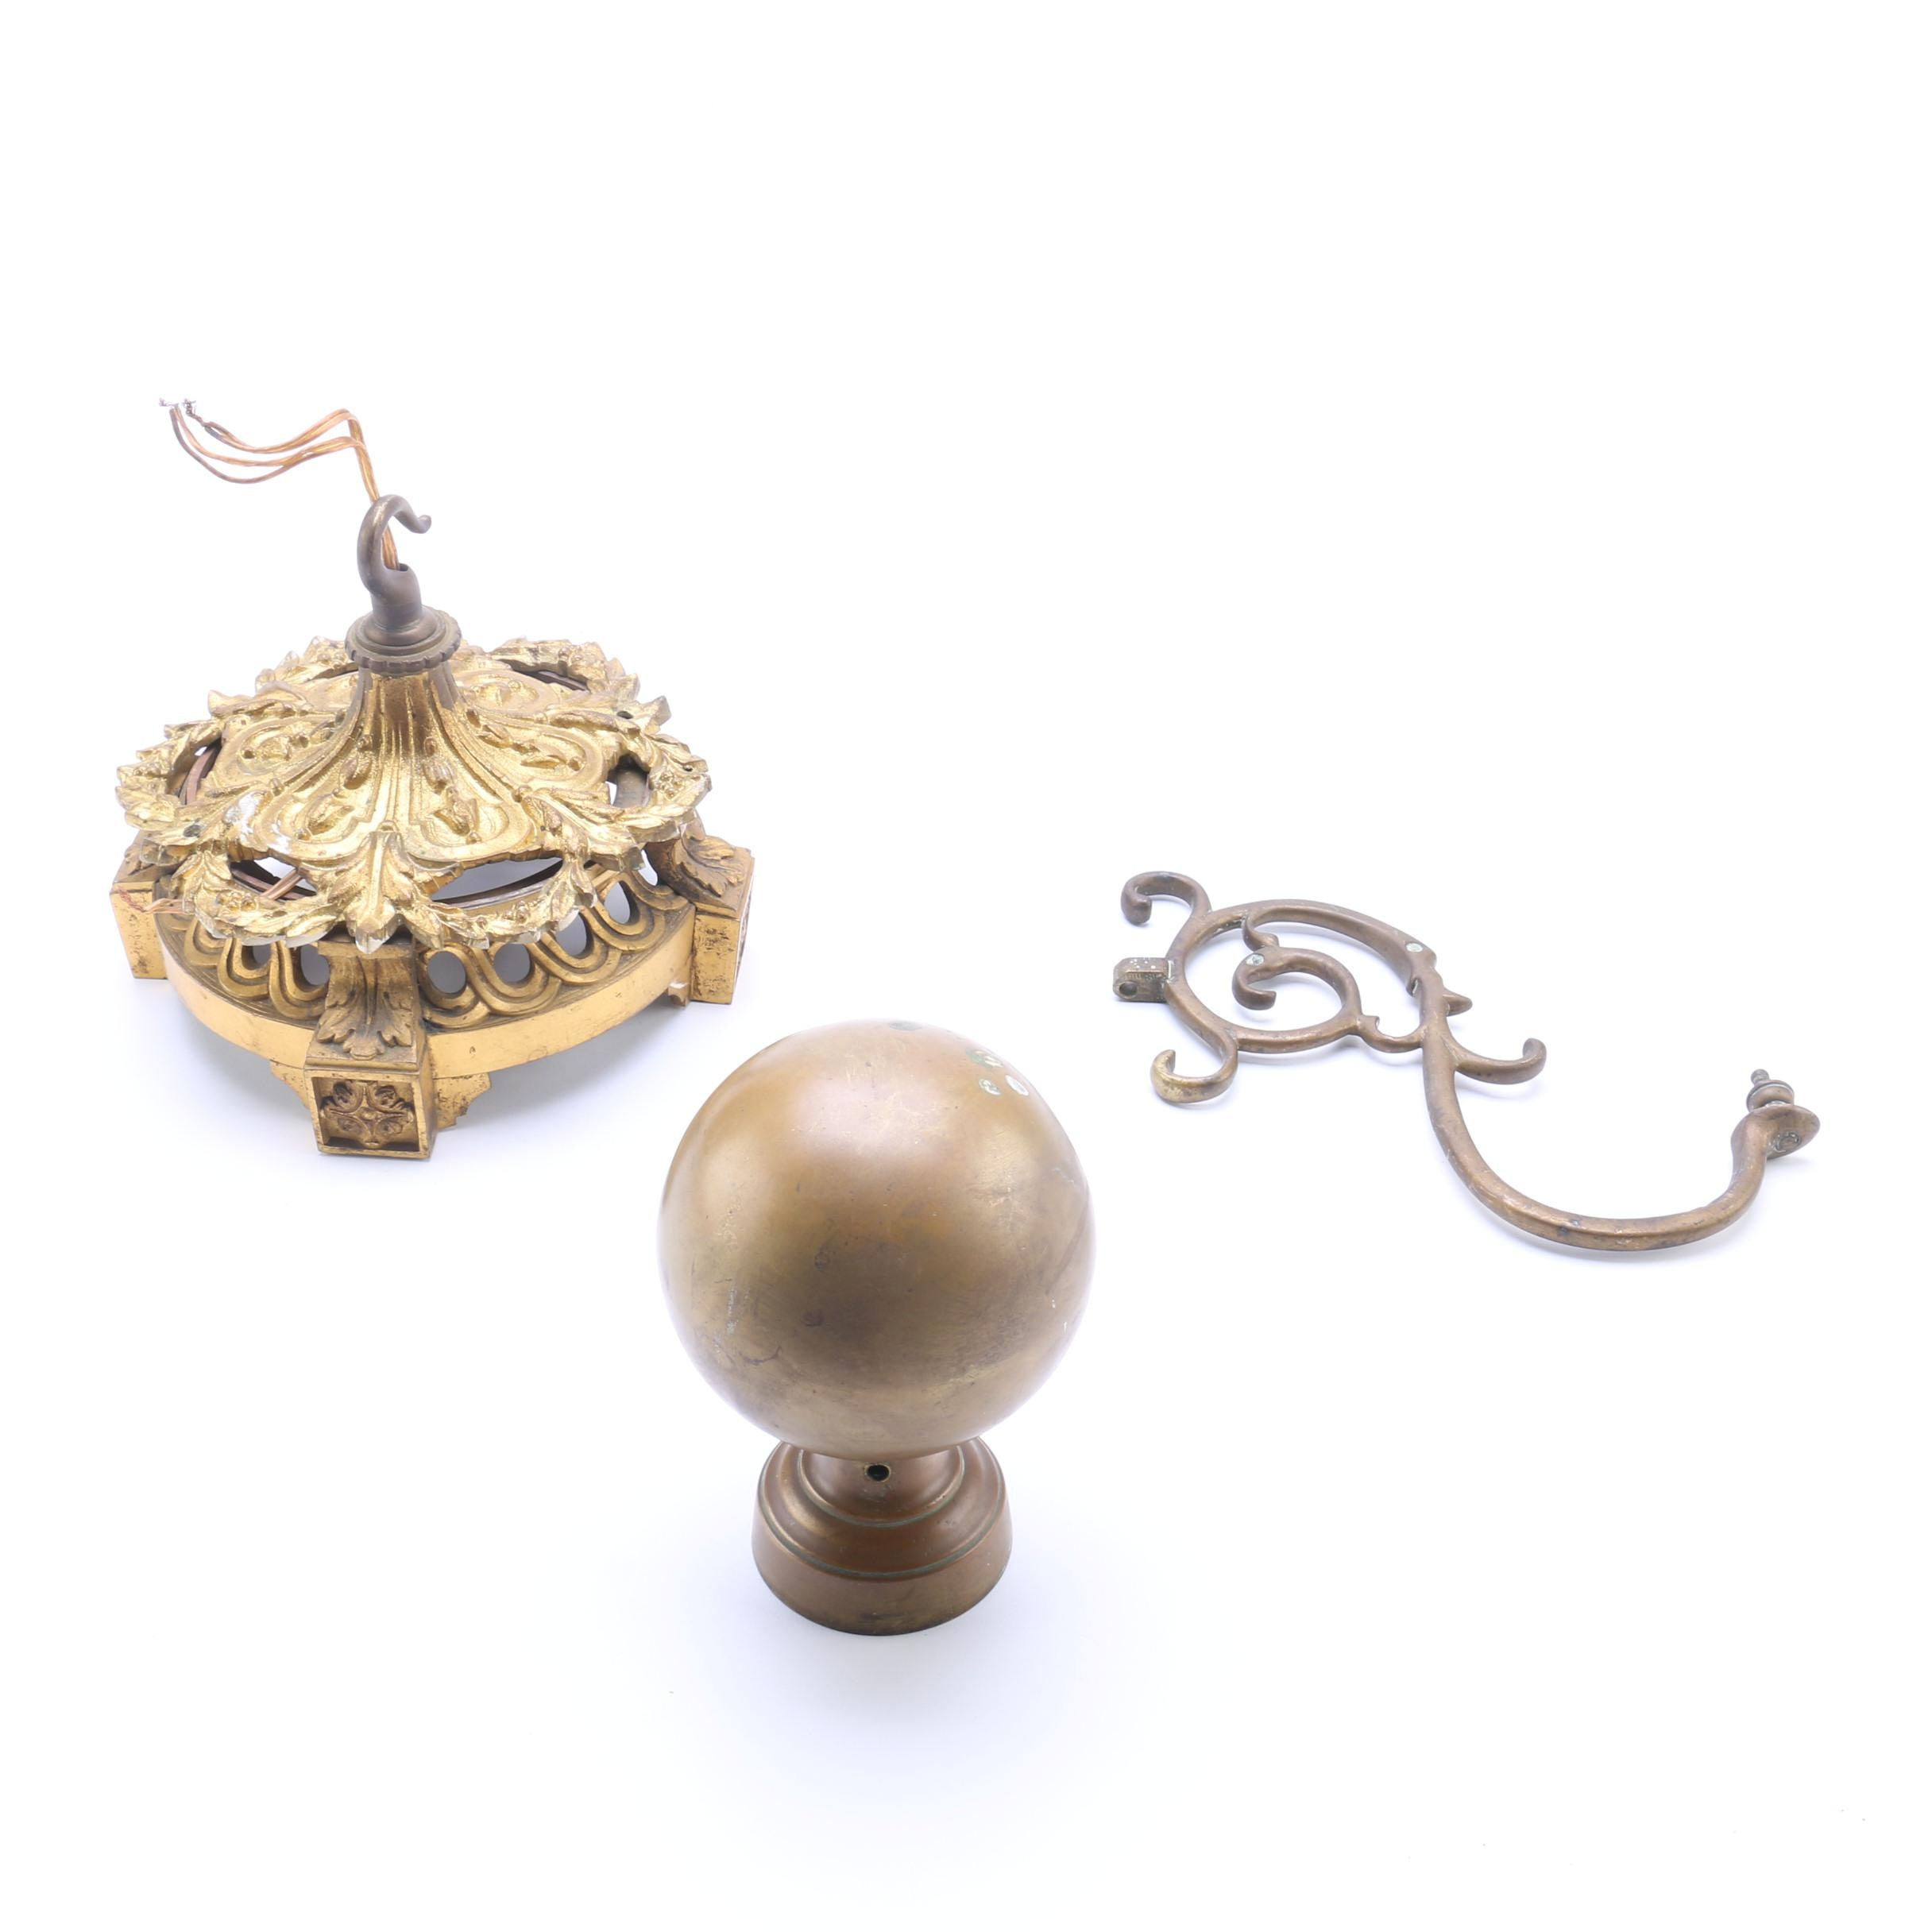 Collection of Antique Brass Hardware